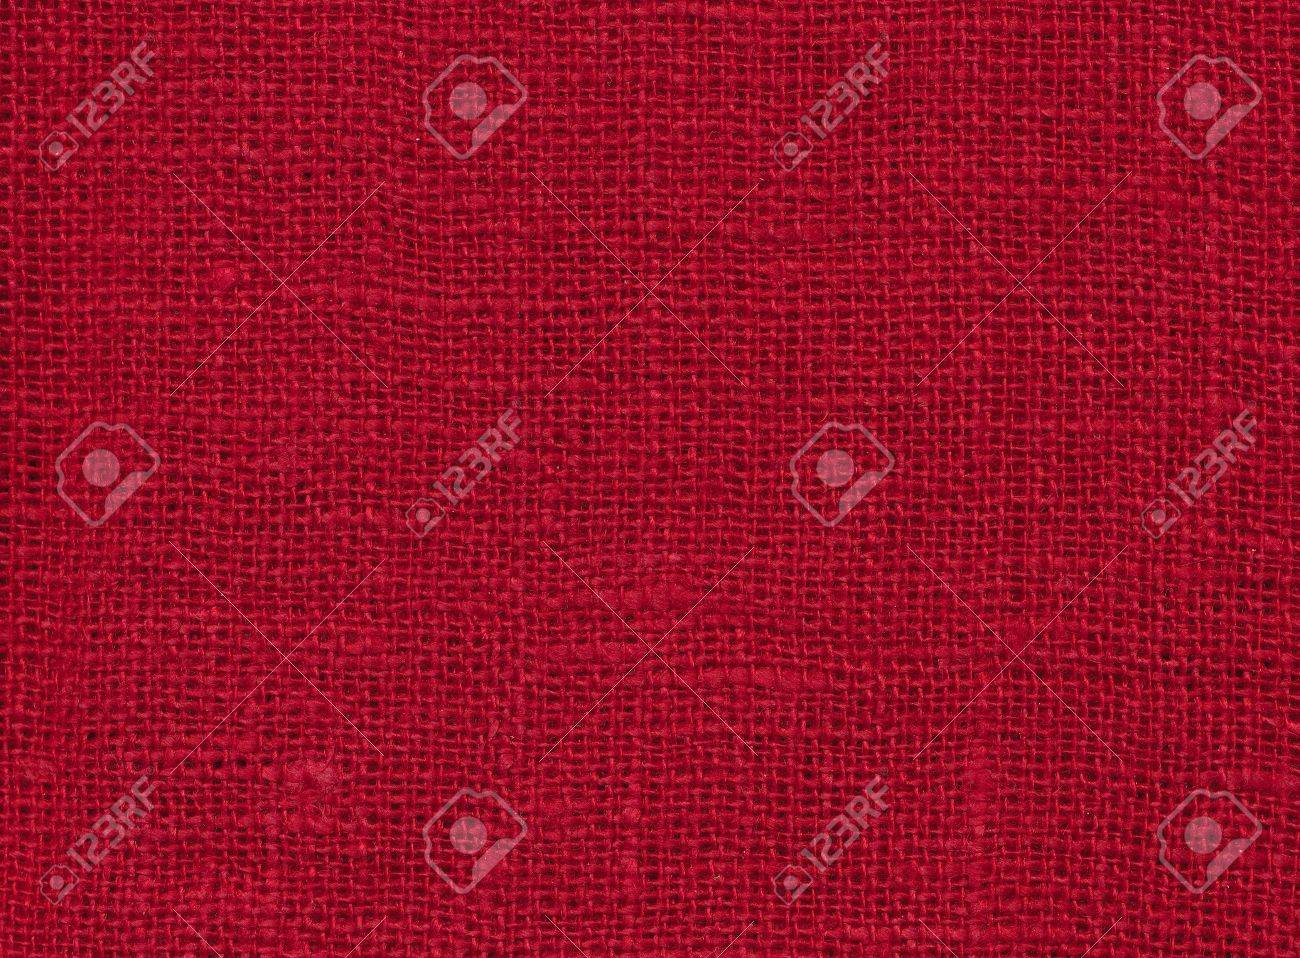 Background - red woven fabric Stock Photo - 13213115